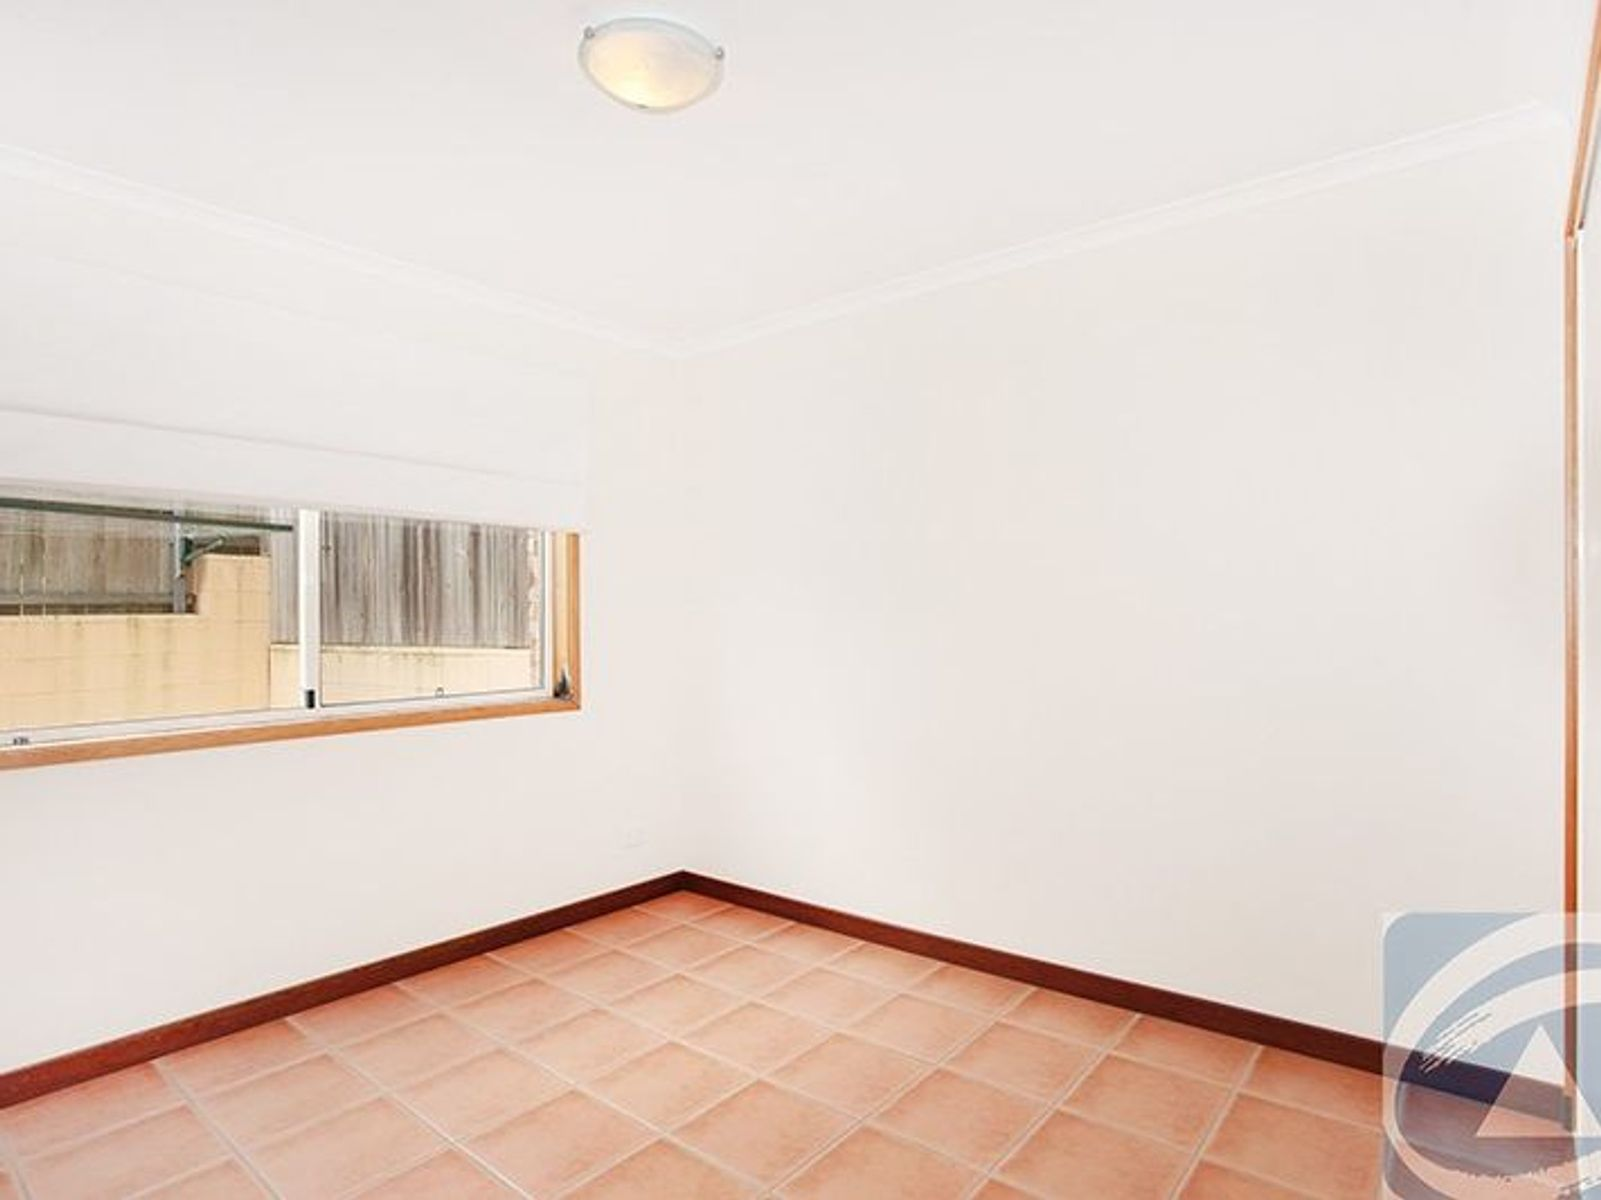 4/32 Campbell Street, Woombye, QLD 4559